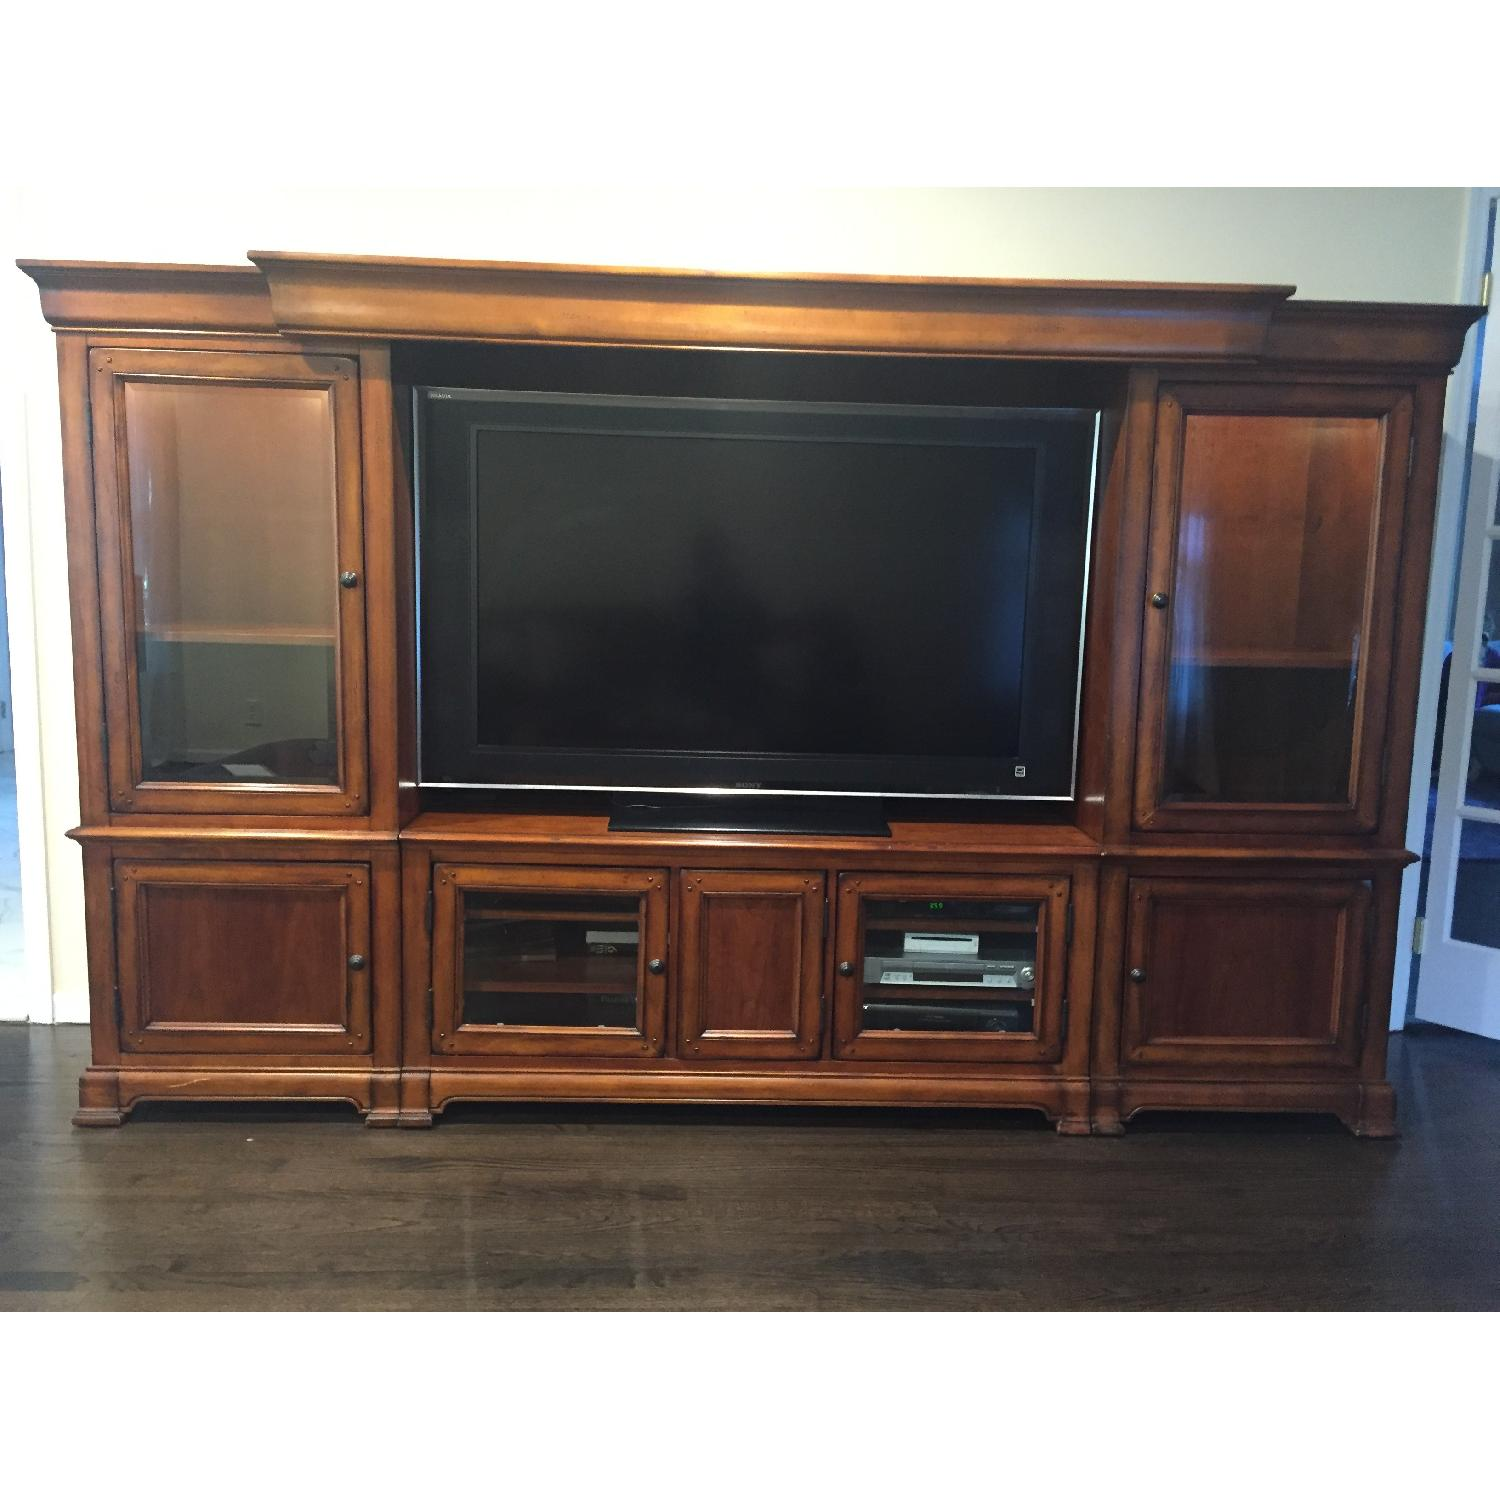 Hooker Furniture Home Entertainment Wall Unit - image-2